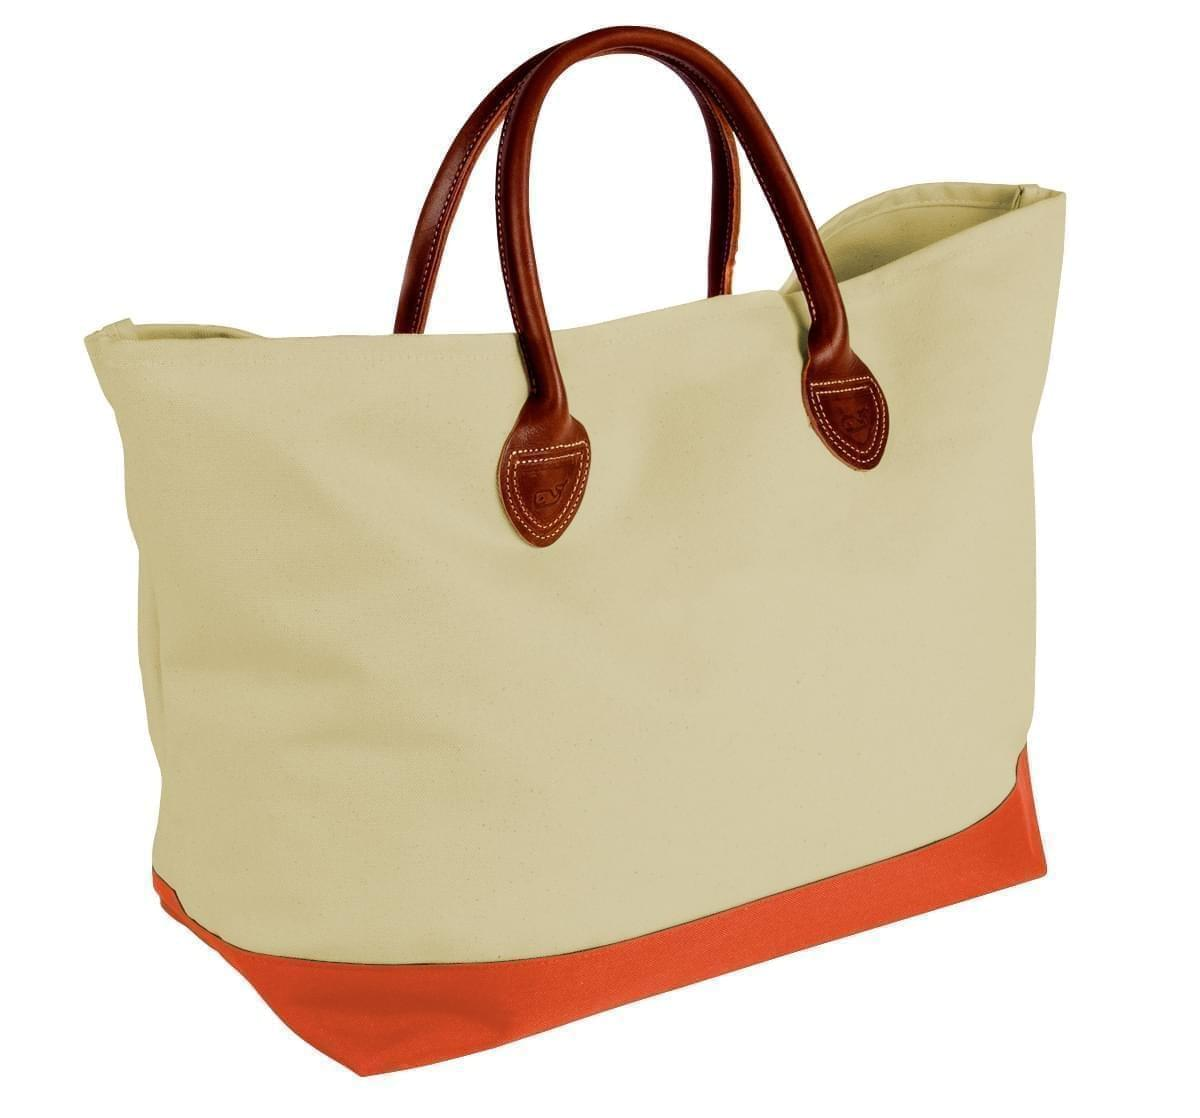 USA Made Canvas Leather Handle Totes, Natural-Orange, 10899-JK9